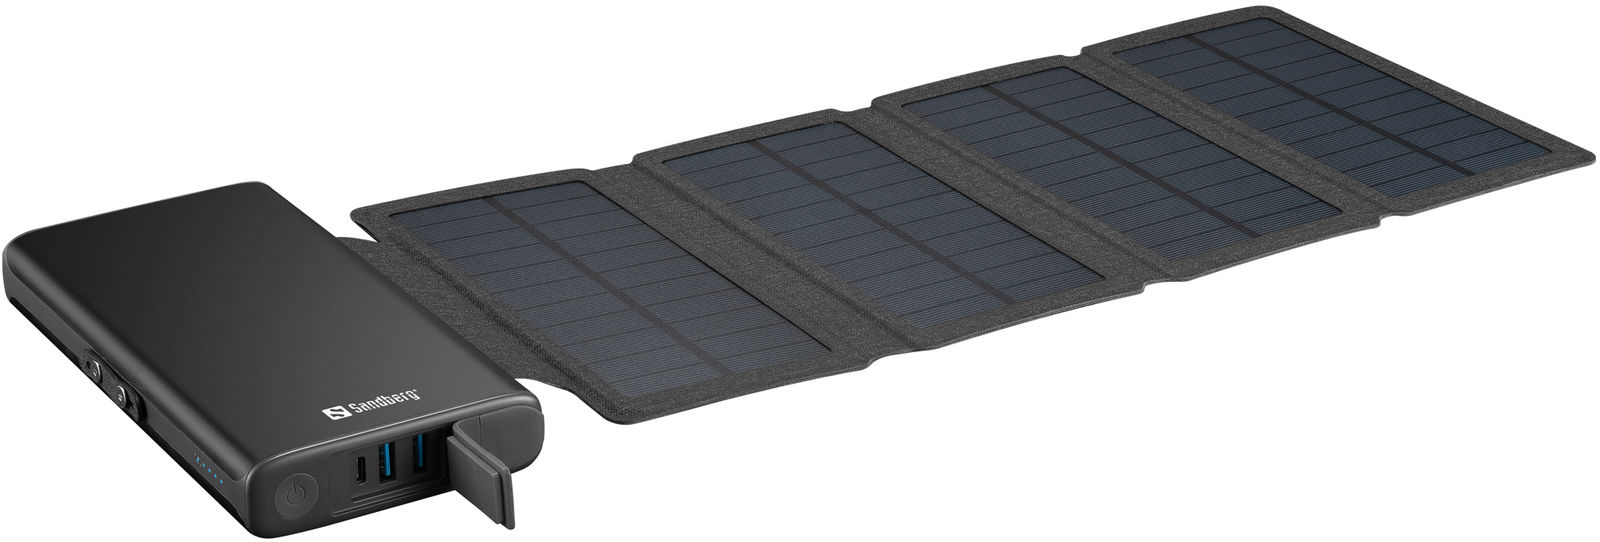 Sandberg Solar 4-Panel Powerbank 25000  420-56 - eet01